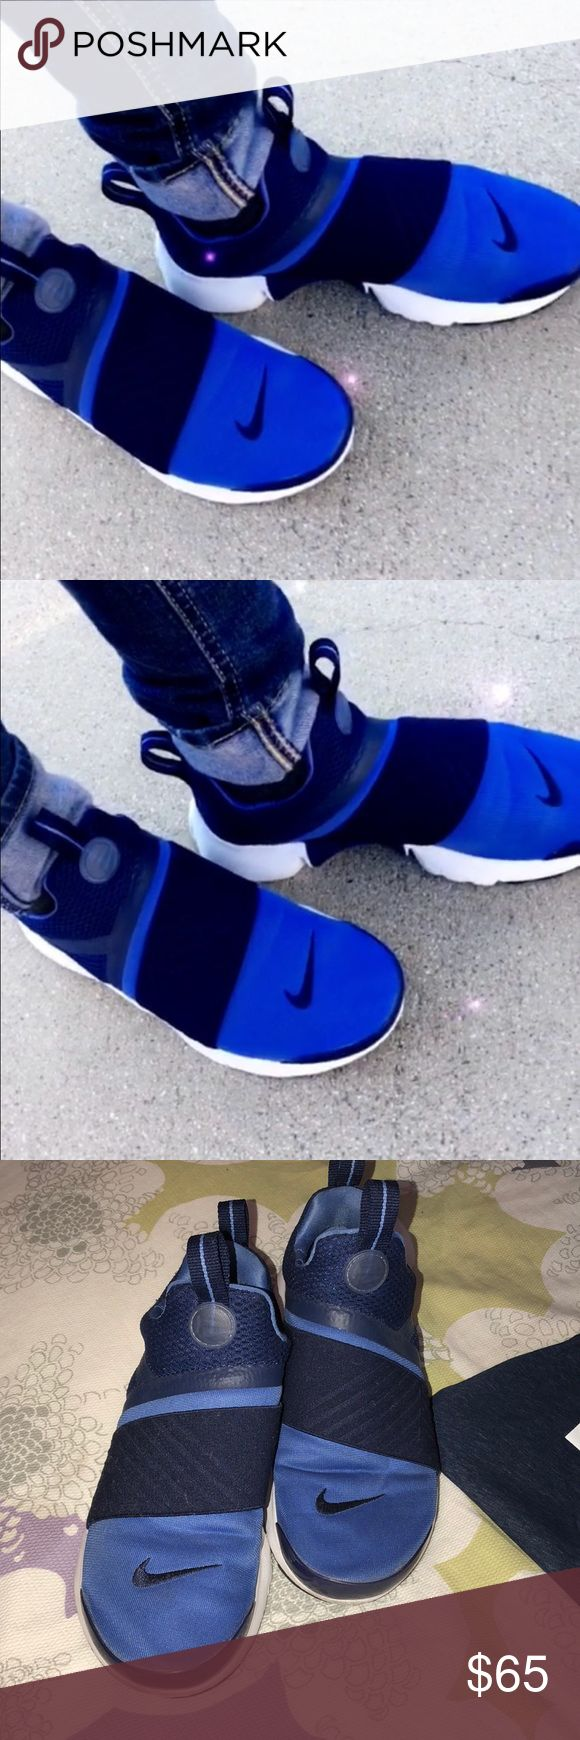 NIKE shoes with matching tank ✨💙👟✨ NIKE presto slip ons. Great for running or a sporty chic look ✨💙👟✨  tank top is a XS AND IS the $10 added to this price. With our shirt shoes alone are $50 please comment if you would like more pictures or information dolls 😘 Nike Shoes Athletic Shoes